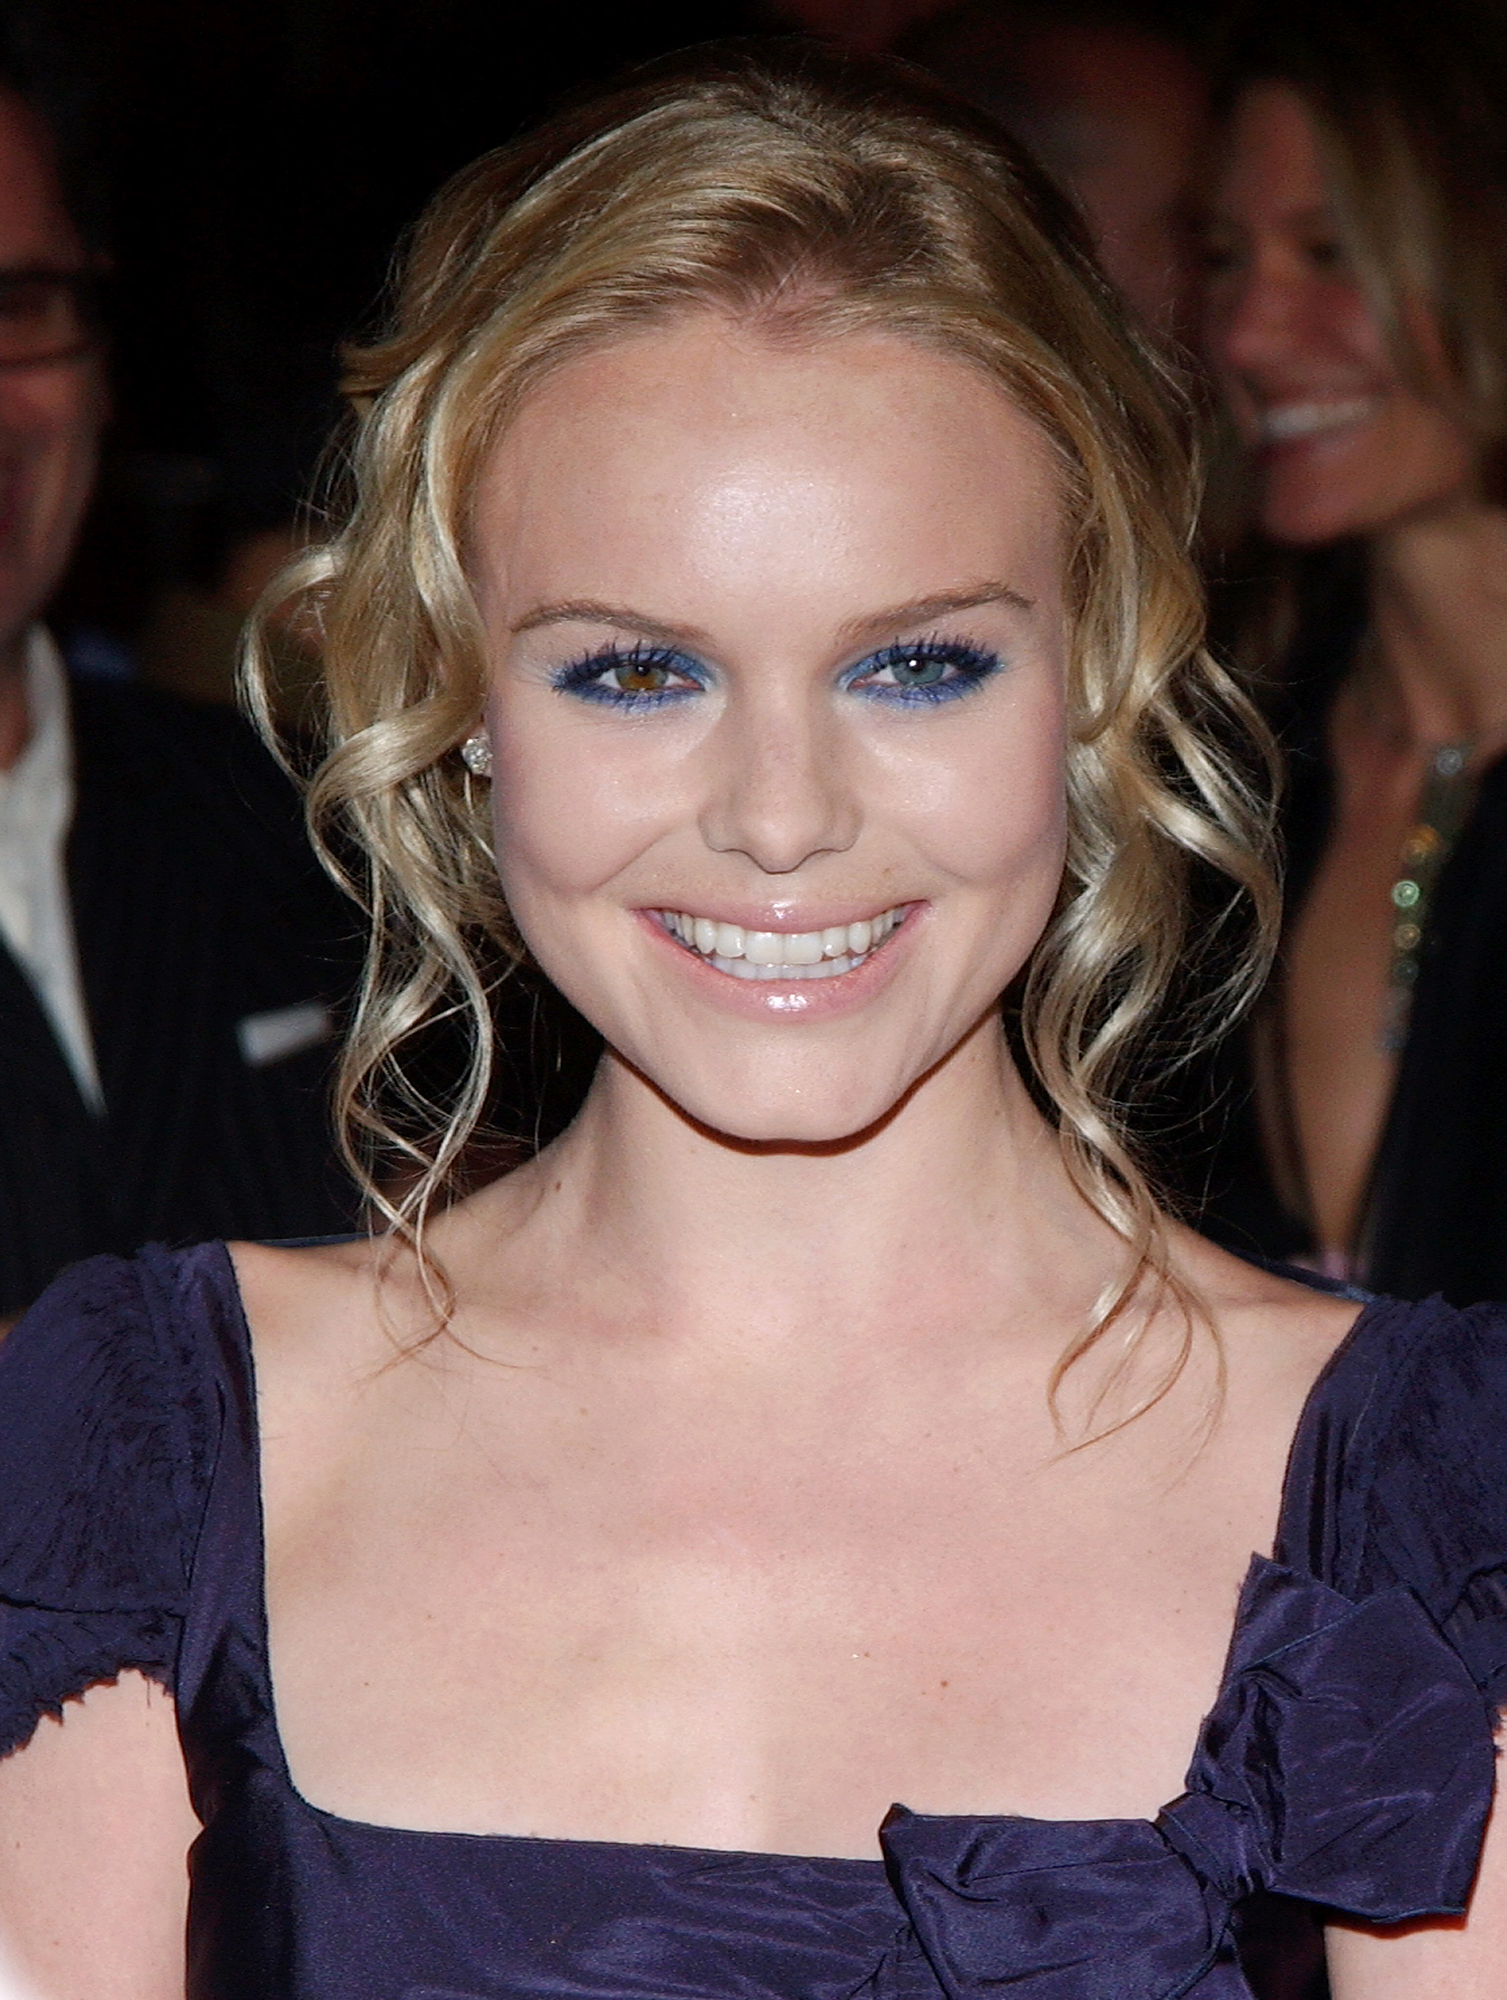 See Birthday Girl Kate Bosworth's Best Beauty Moments - Bosworth has heterochromia, a condition that results in two different eye colors, and her cobalt liner at the Beyond the Sea premiere in November 2004 perfectly complemented her blue and hazel peepers.